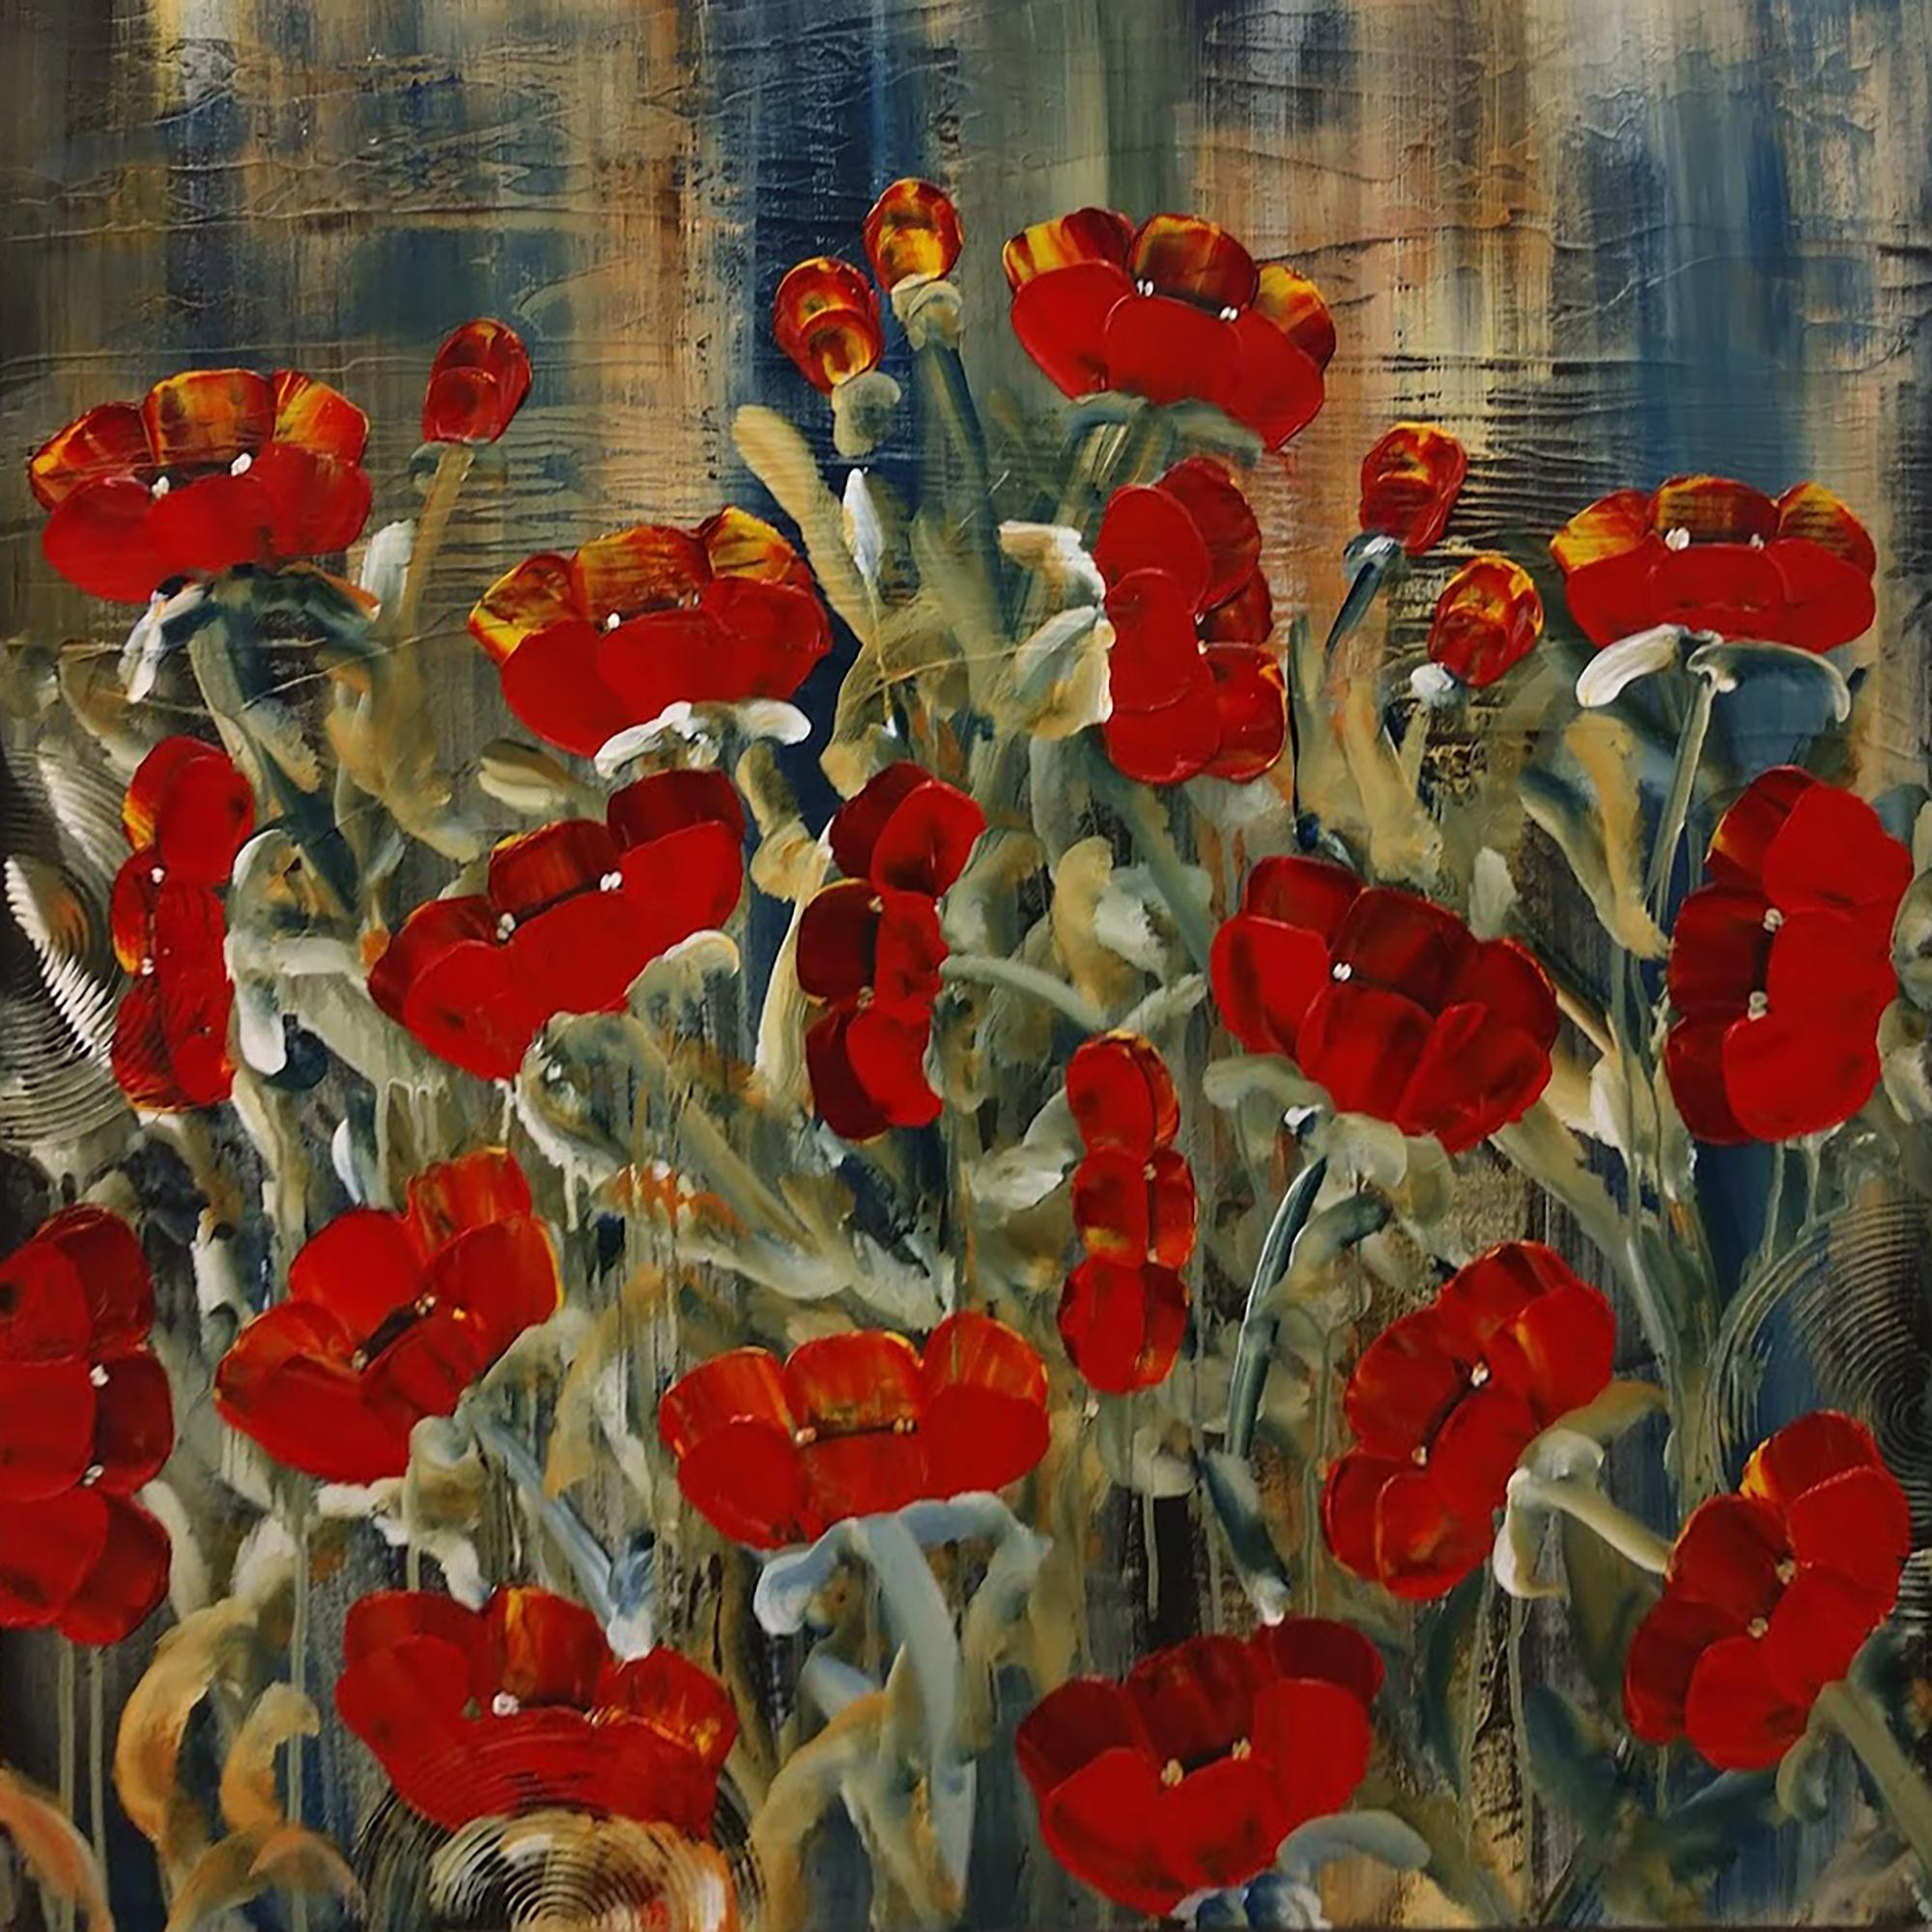 36_x_36_Red_Poppies_in_Bloom.jpg